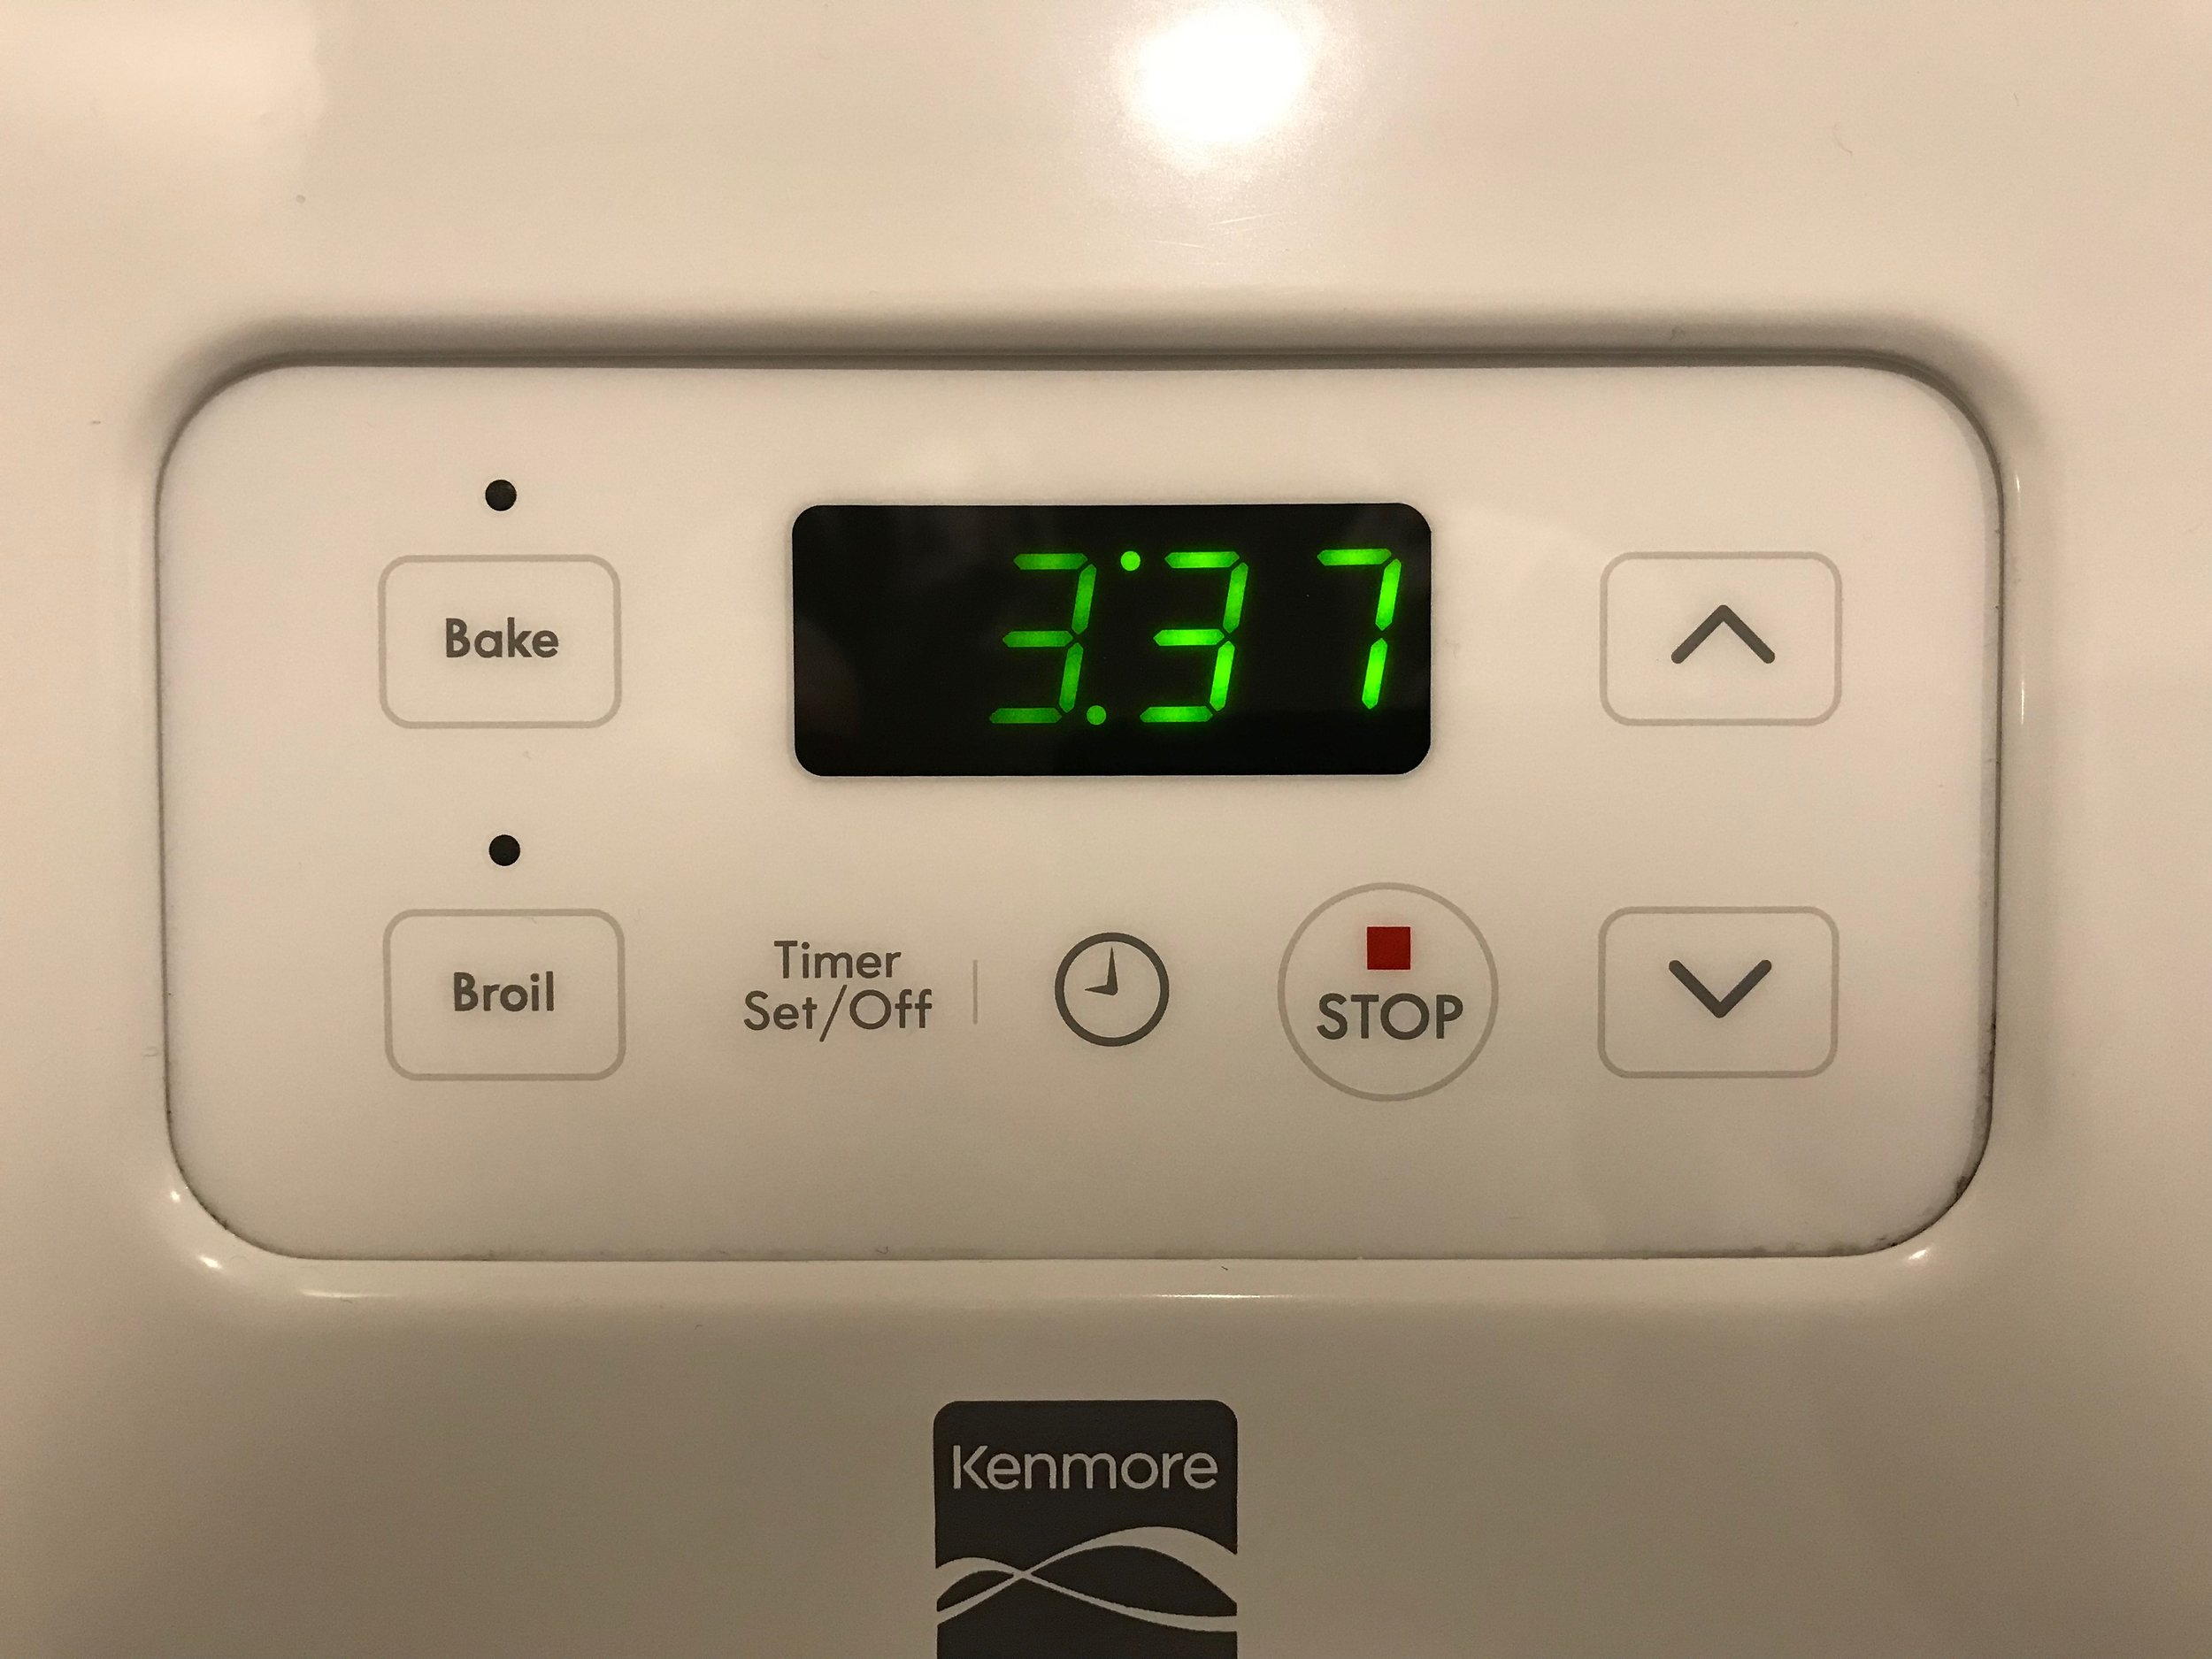 kenmore oven 1